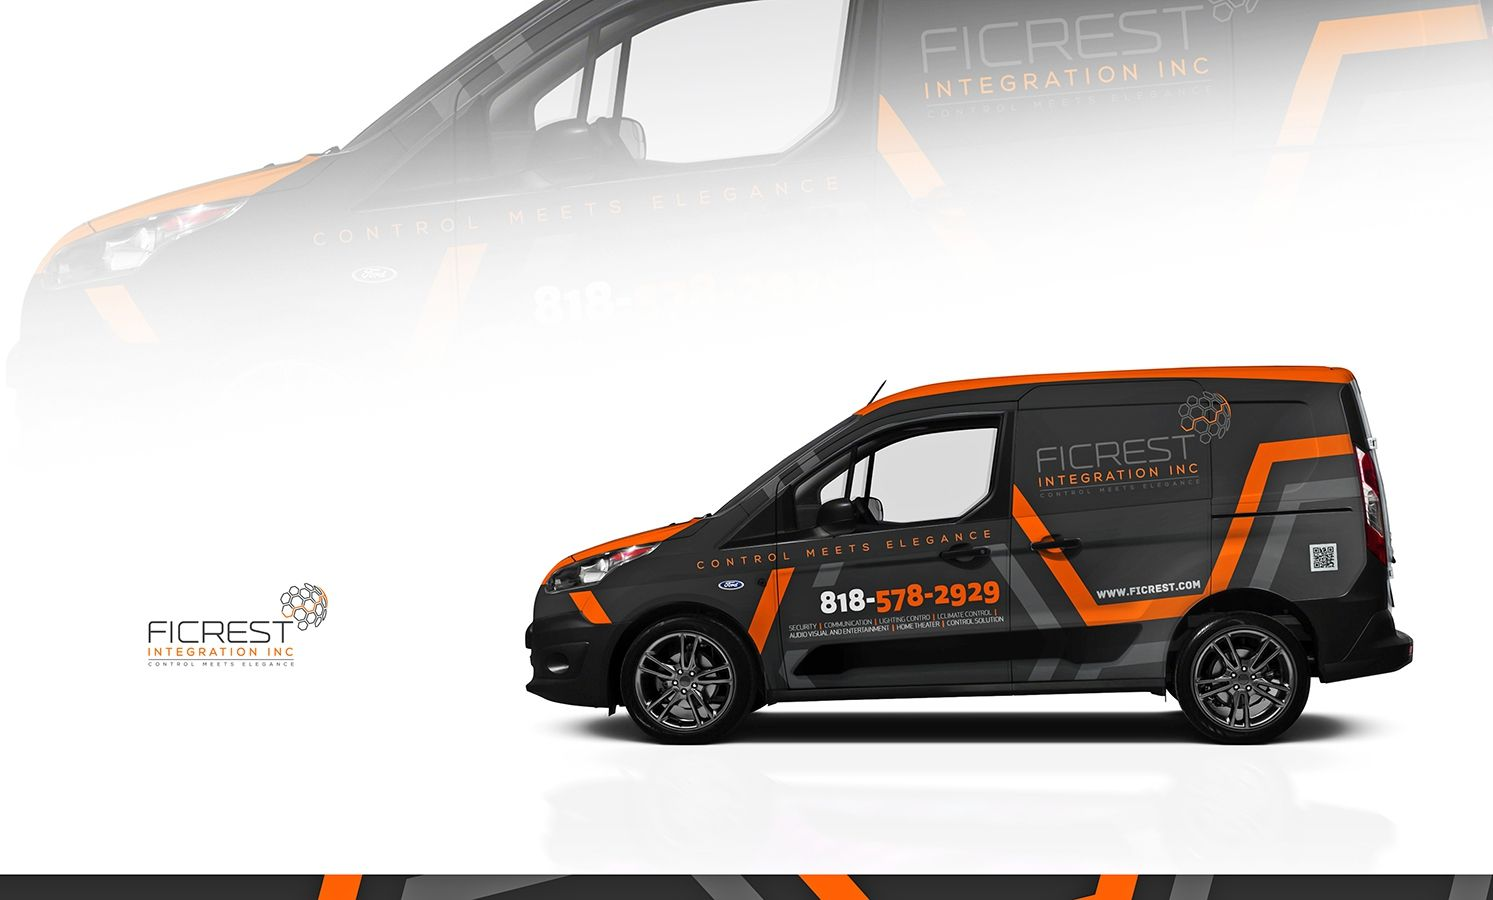 Ficrest Picked A Winning Design In Their Car Truck Or Van Wrap